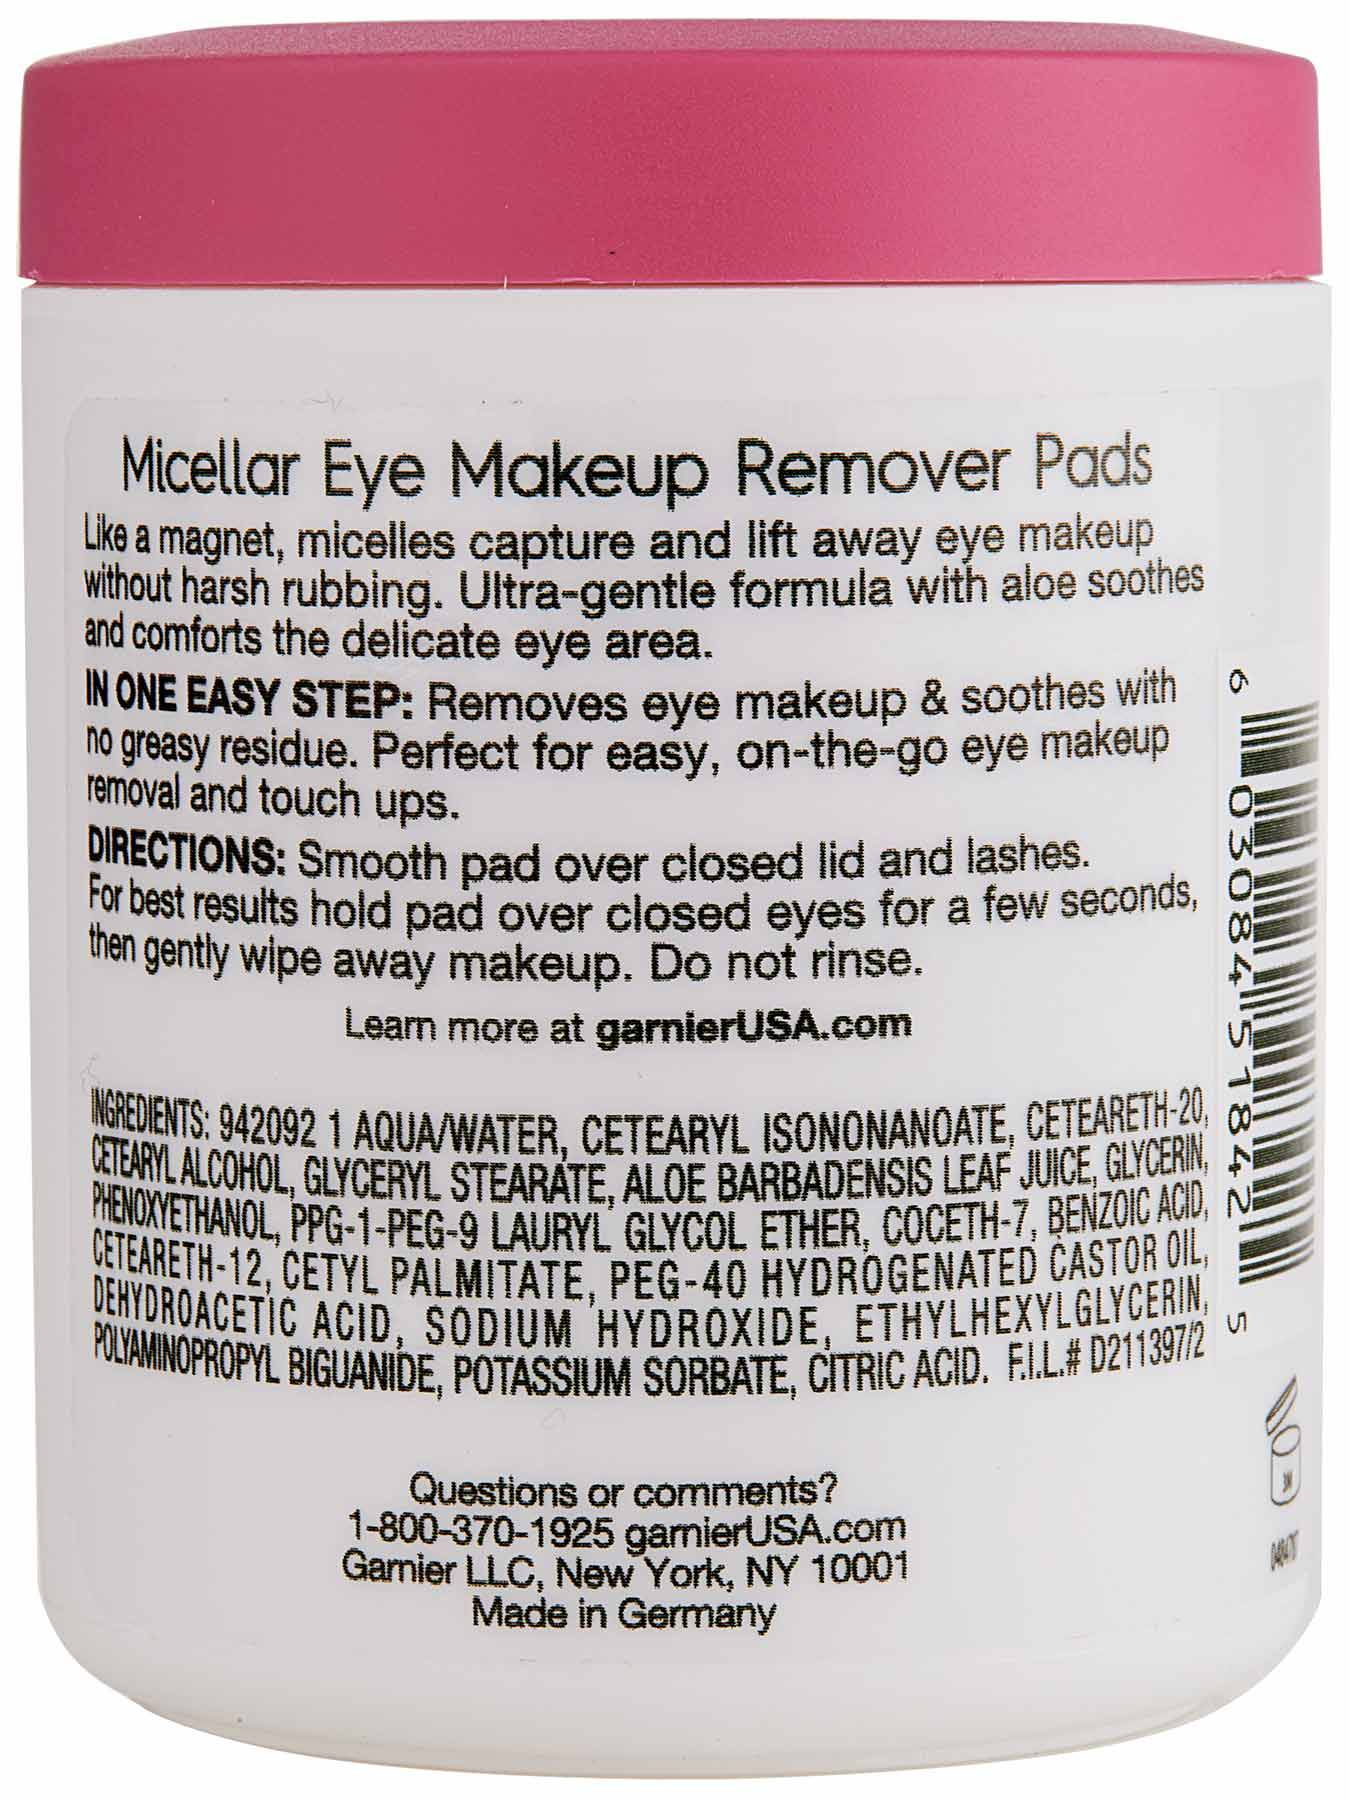 Back view of Micellar Eye Makeup Remover Pads.